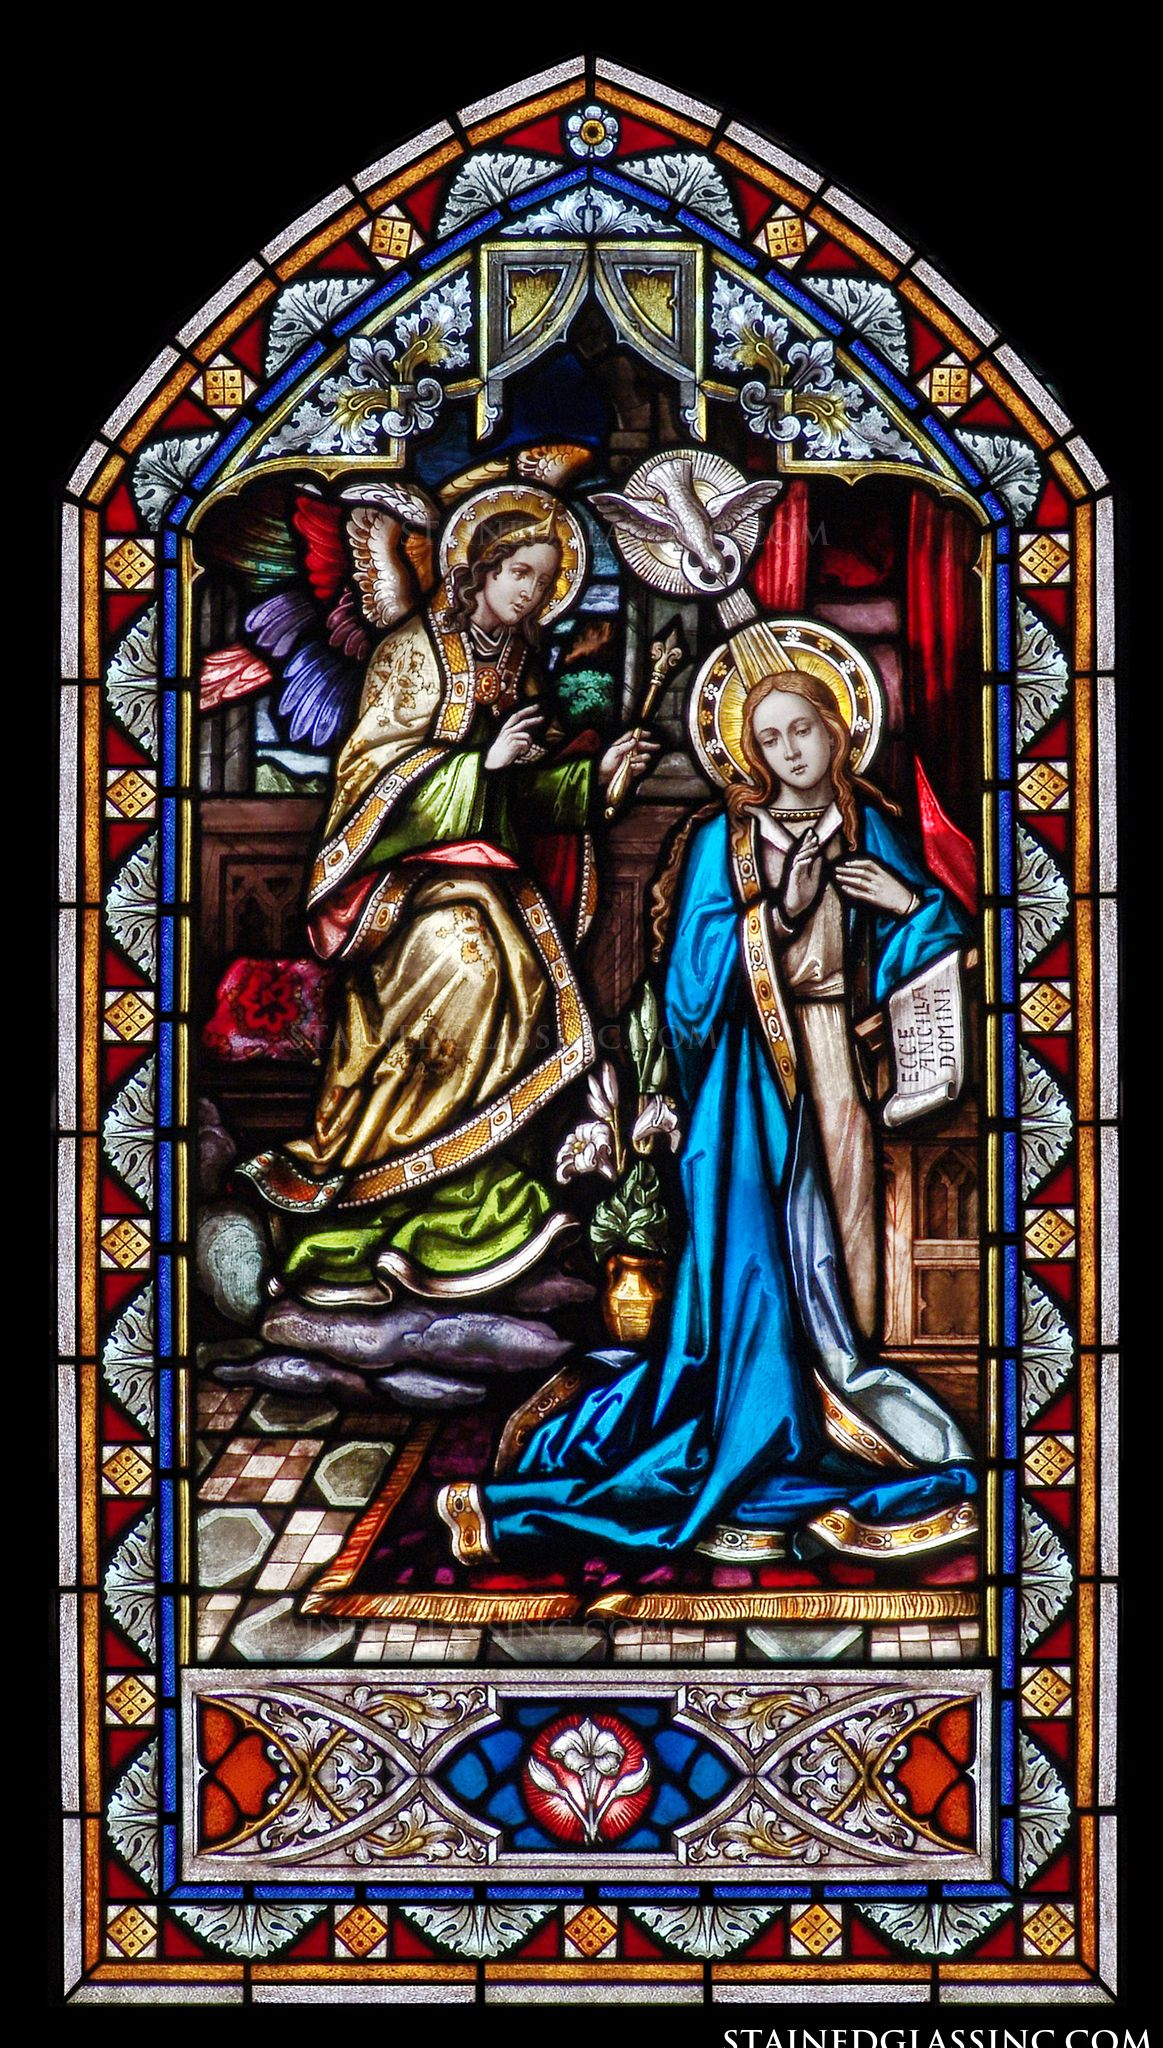 quotheavenly annunciationquot religious stained glass window